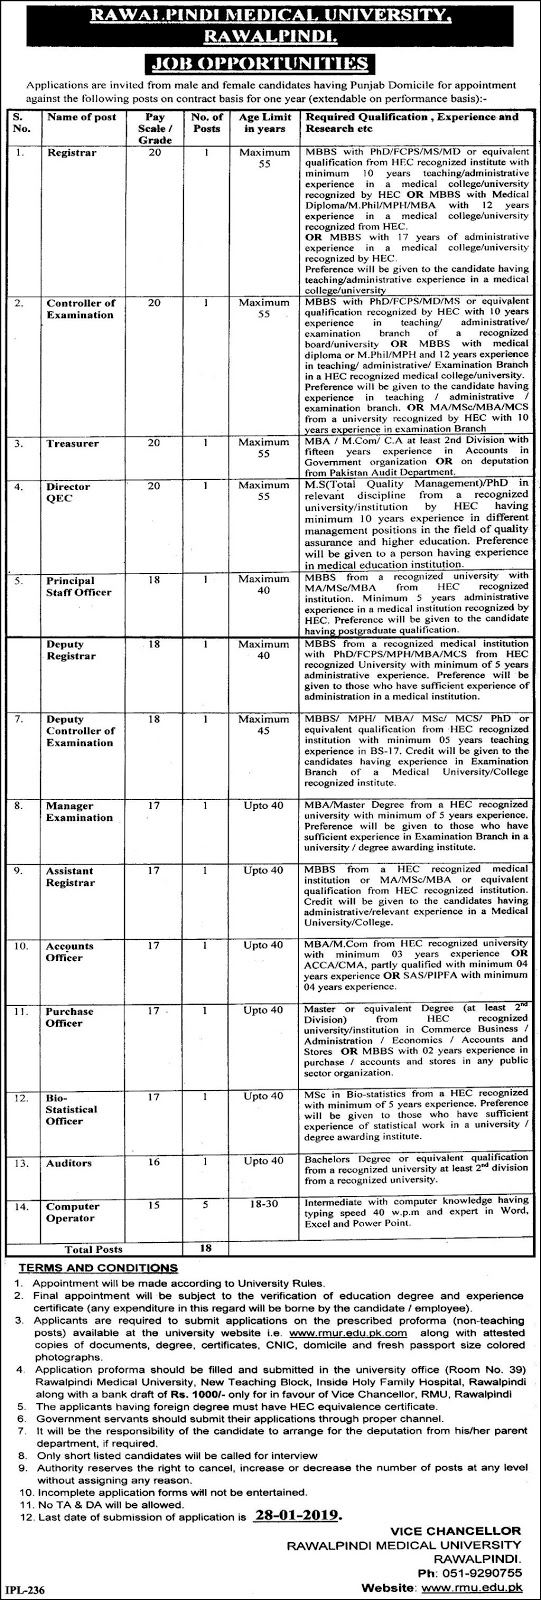 Jobs vacancies In Rawalpindi Medical University 11 January 2019